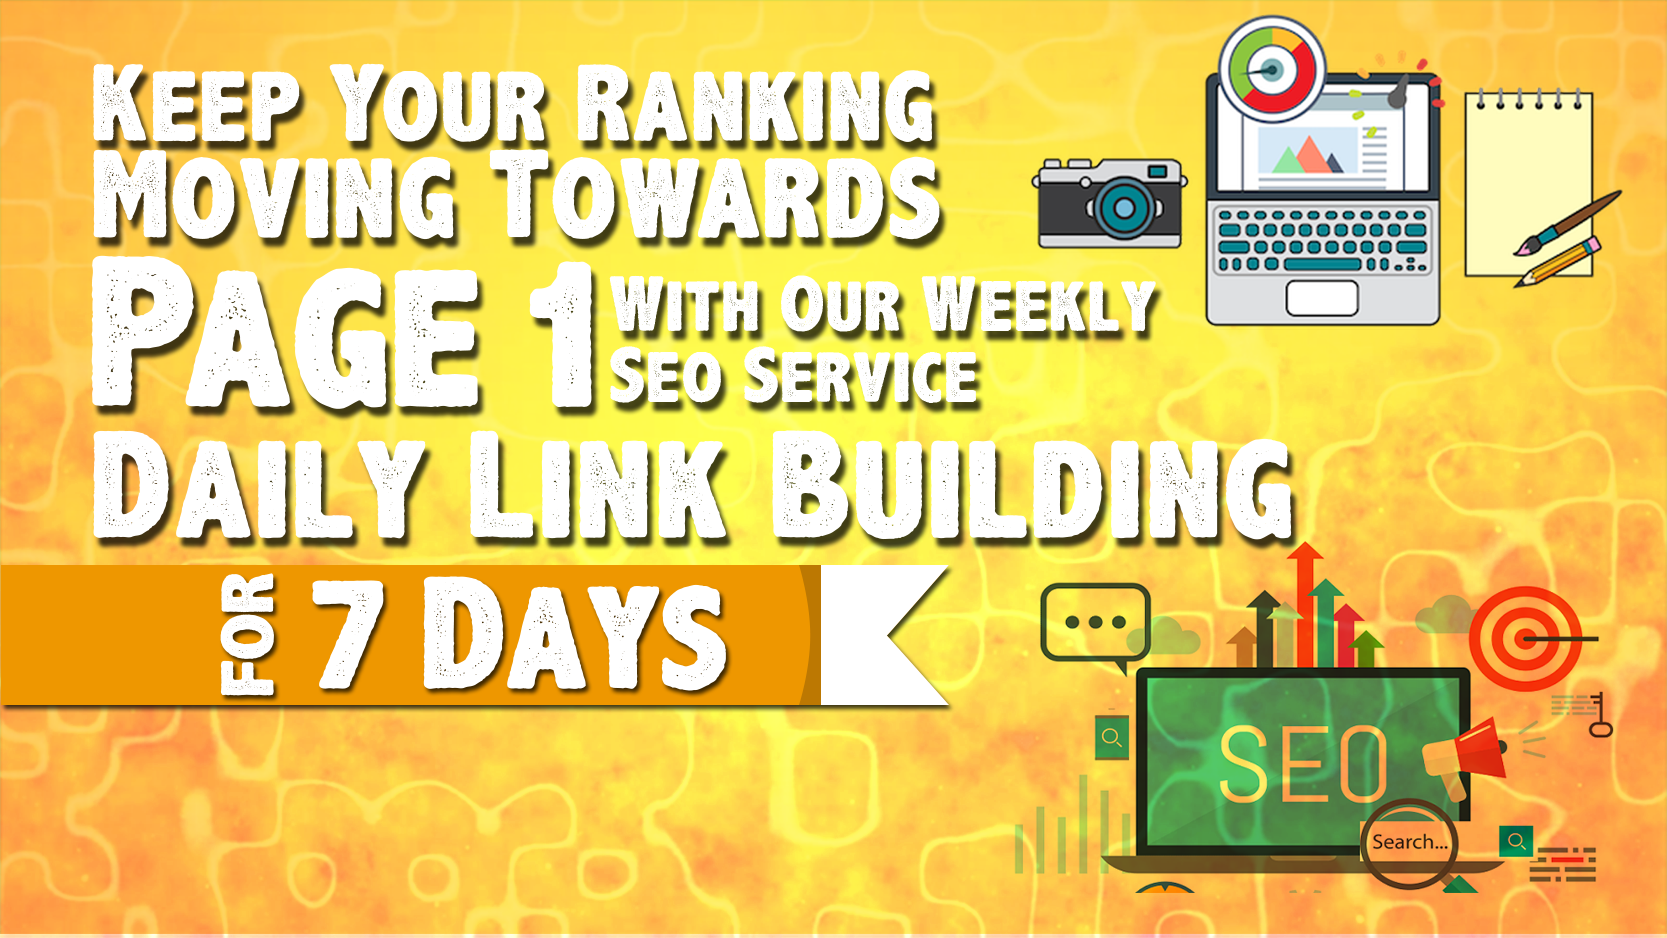 Weekly Backlinks Service - Biggest Boost In 7 Days That SEO Could Get -